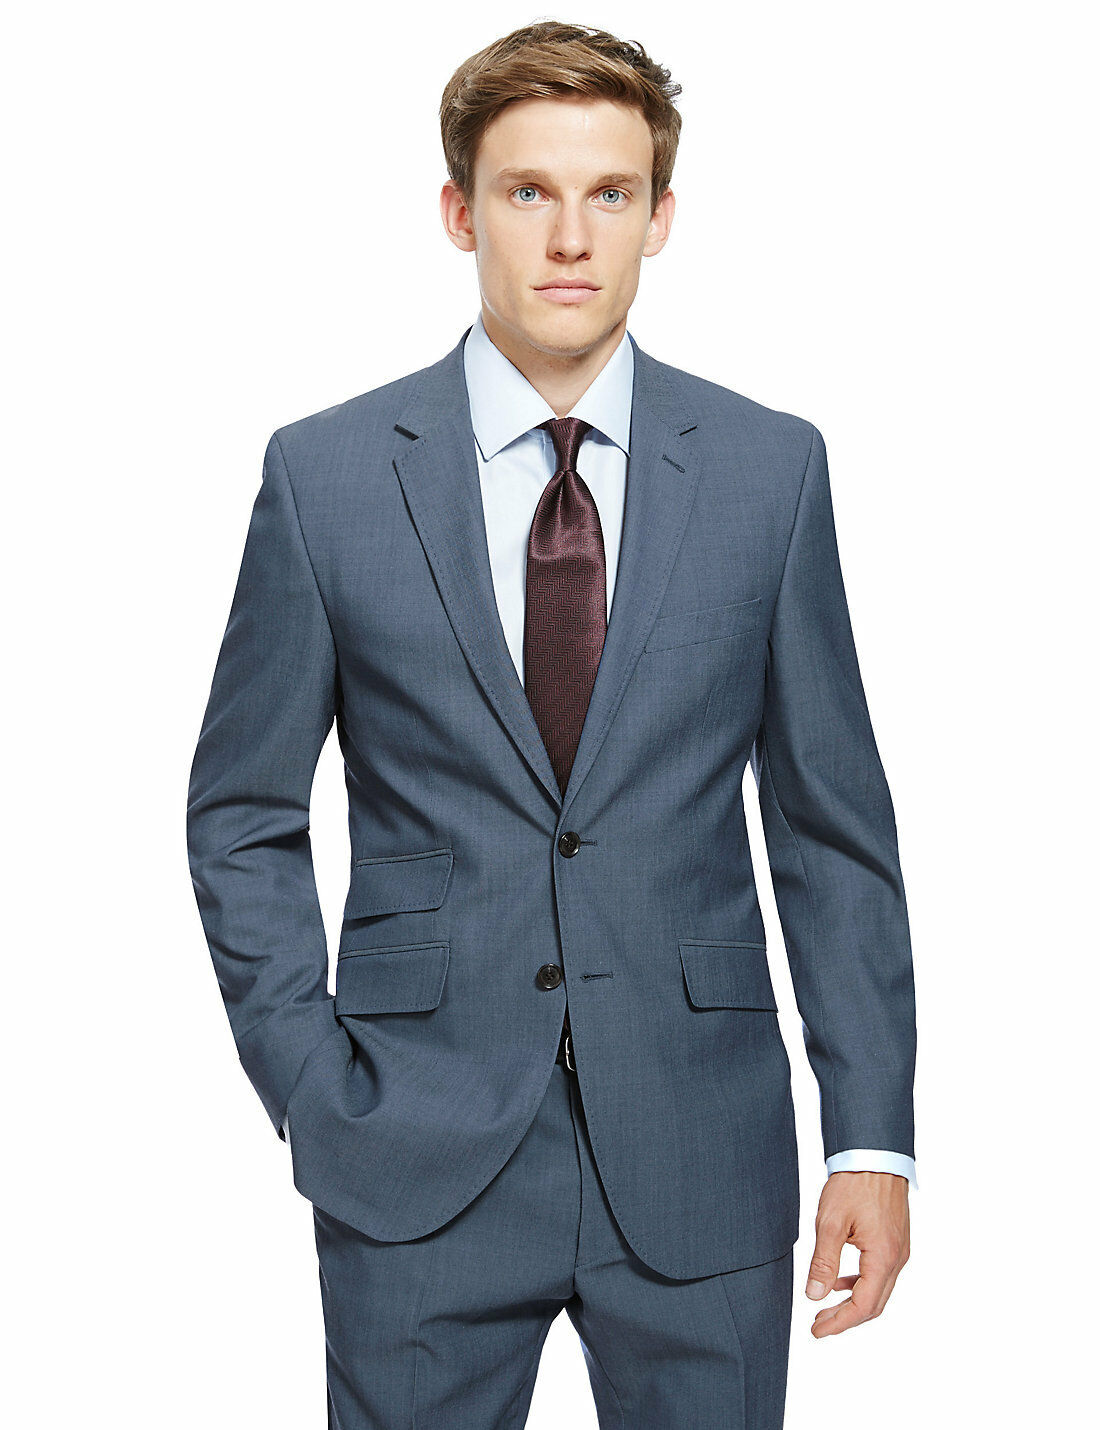 M&S COLLECTION bluee Ultimate Performance Tailored Fit Wool Blend Suit Sz 36L 30